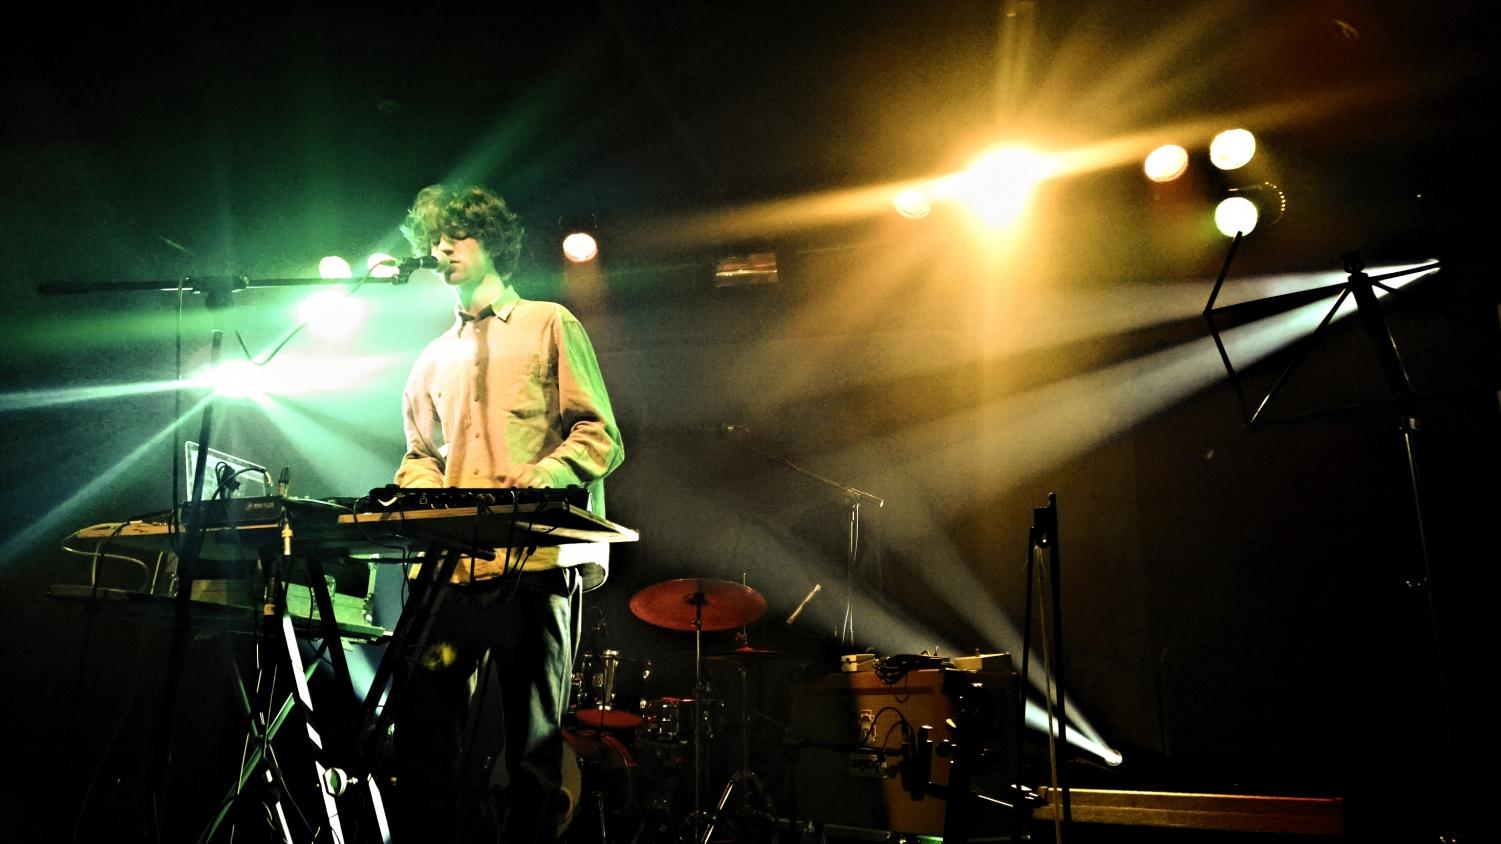 Cosmo Sheldrake, Wedgewood Rooms, Portsmouth (via Wikipedia under the Creative Commons license)